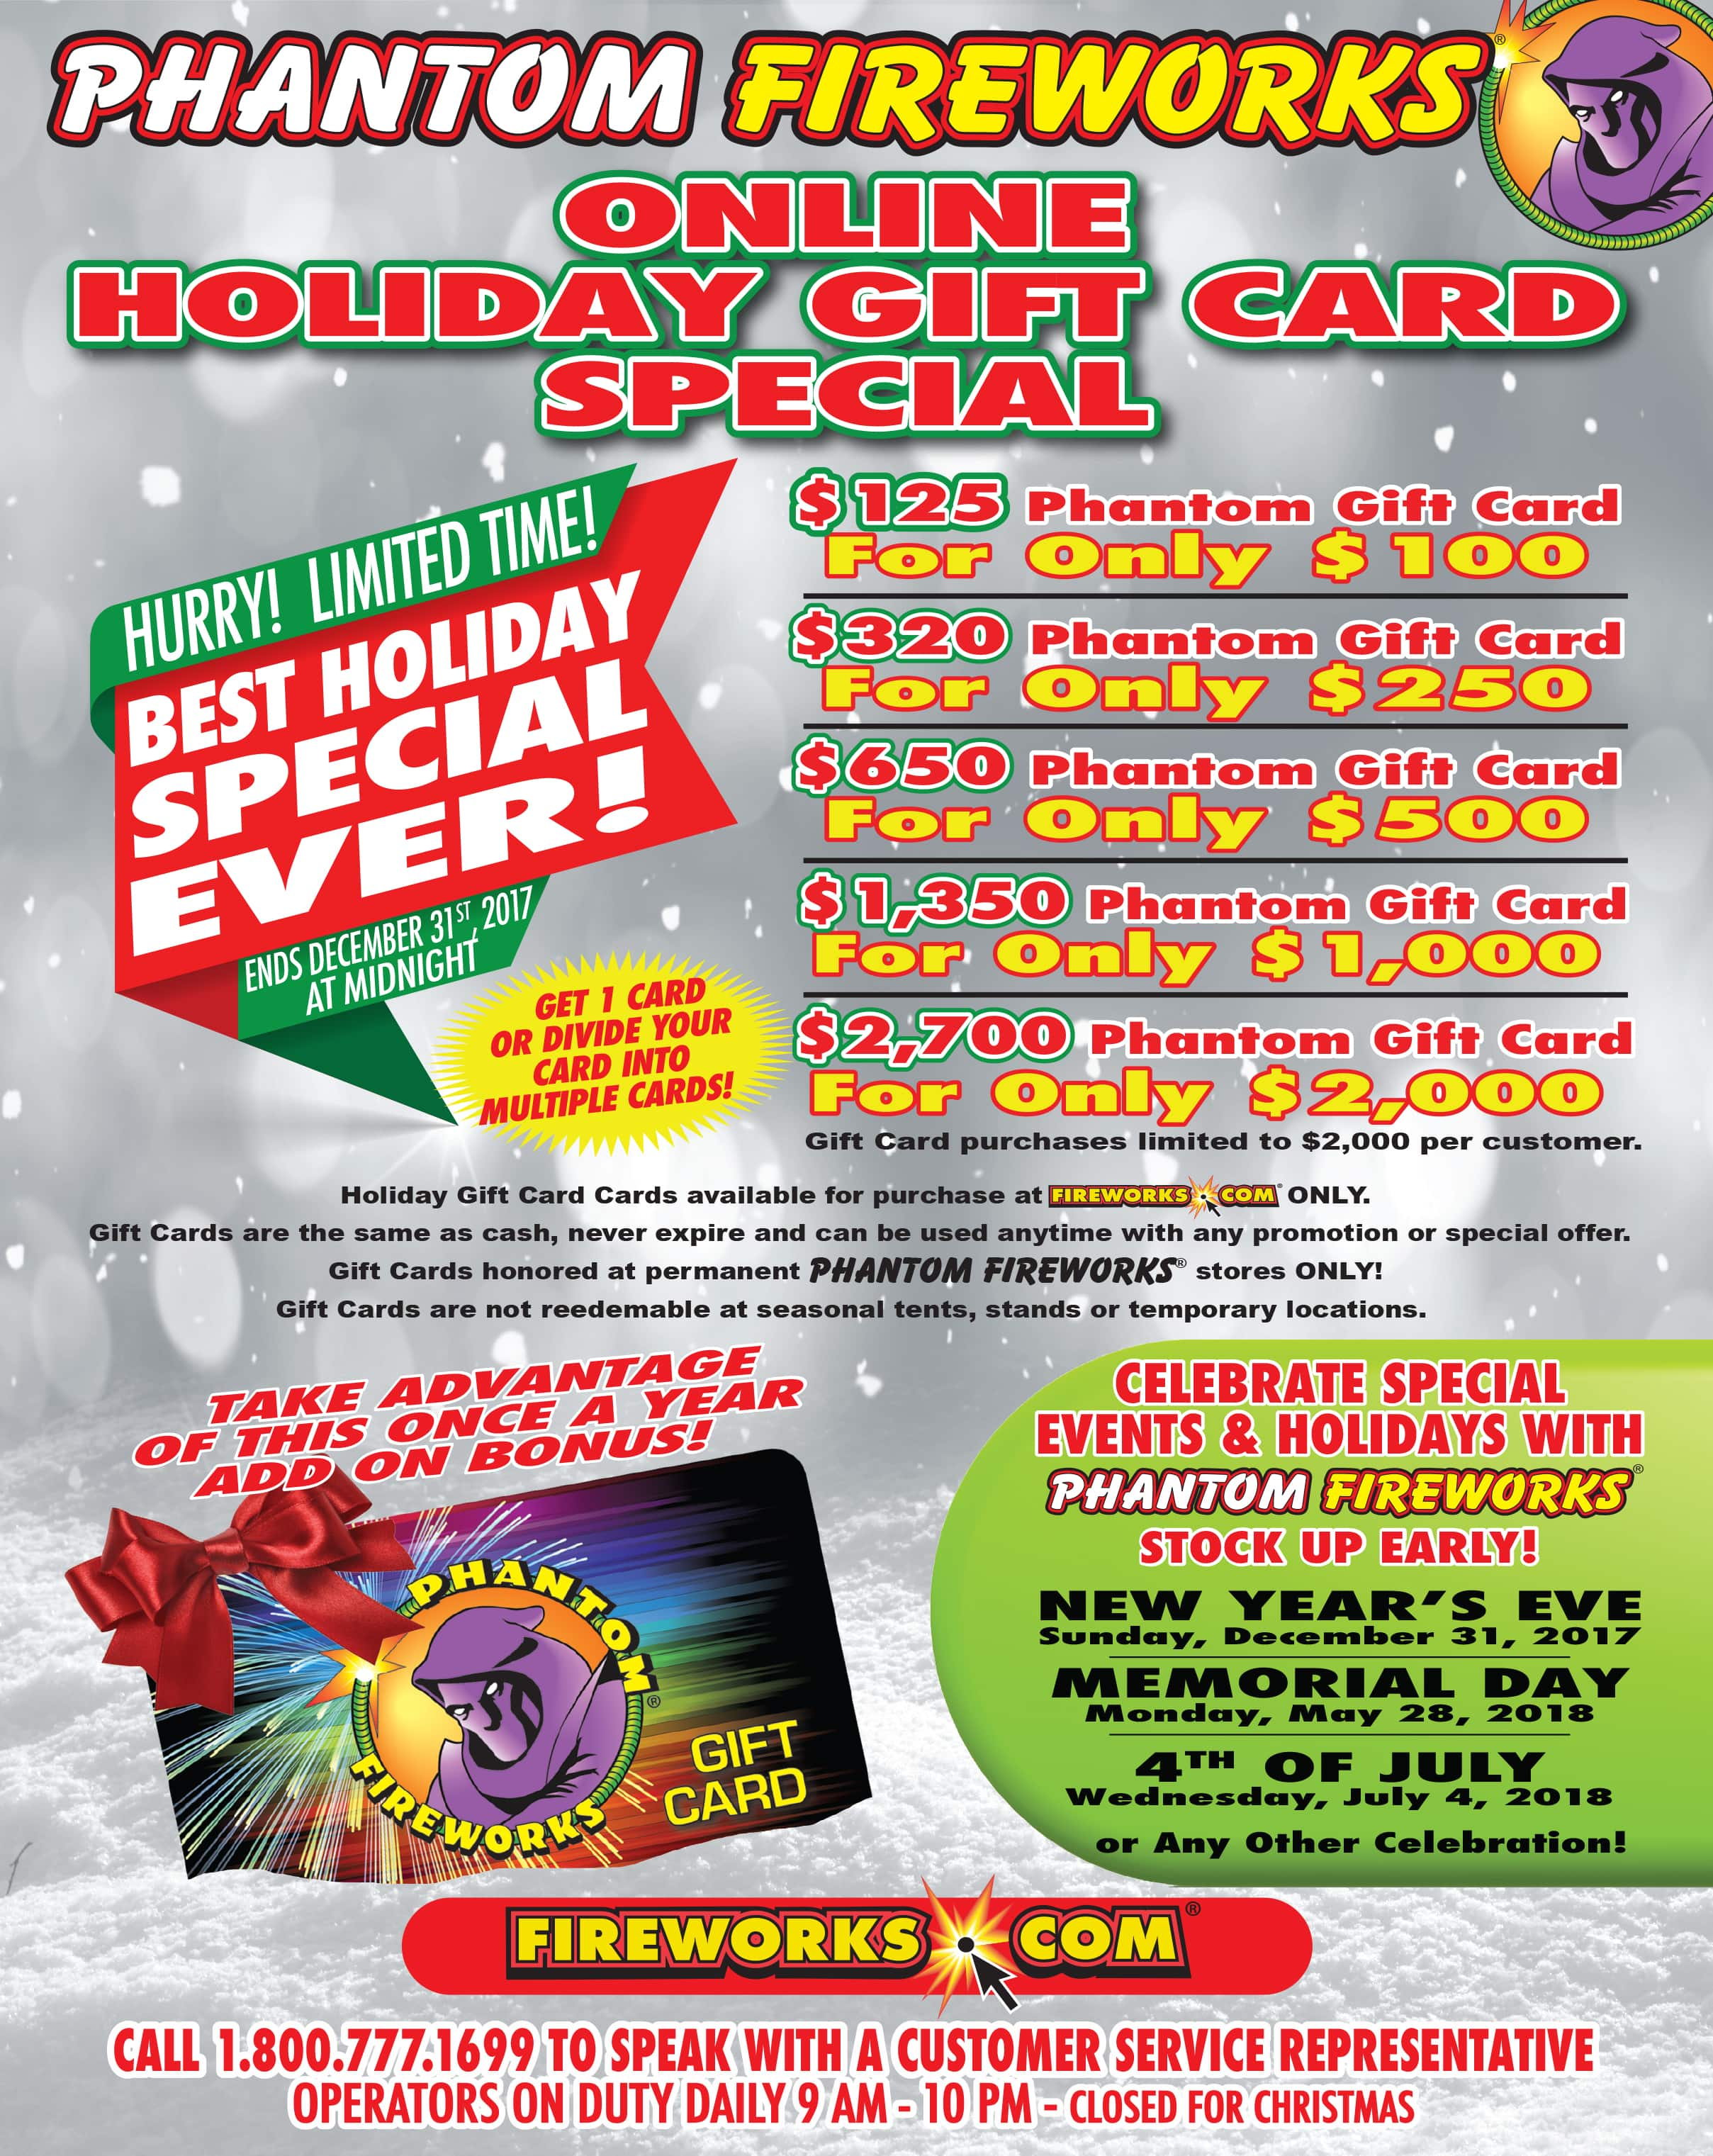 Phantom Fireworks 2017 Holiday Gift Card Special!